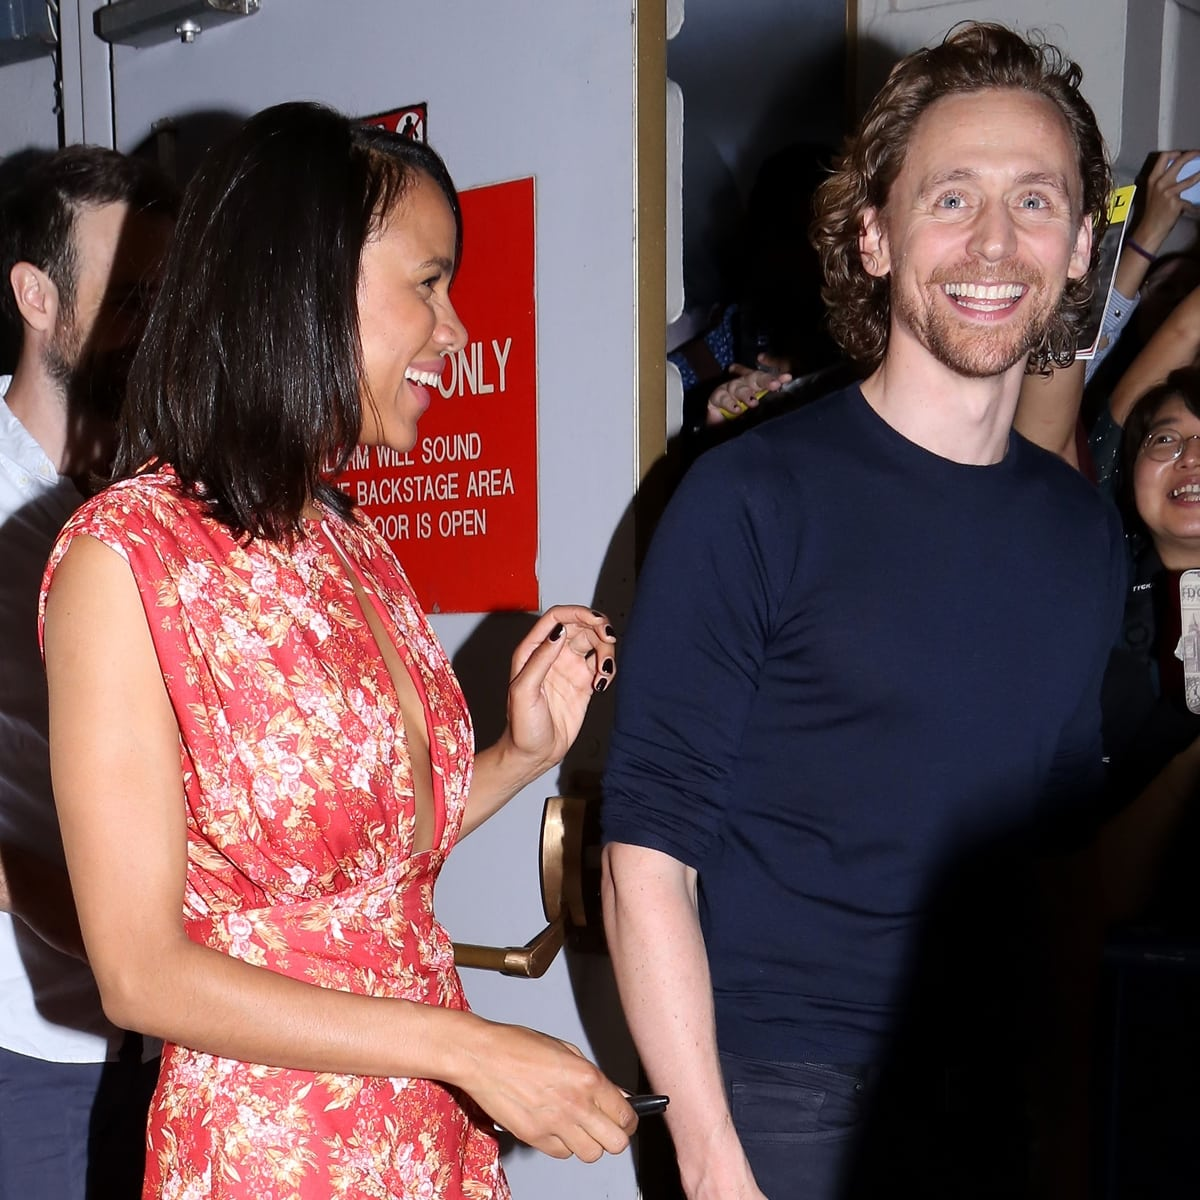 Tom Hiddleston and Zawe Ashton are reportedly still dating in 2021 and are living together in Atlanta